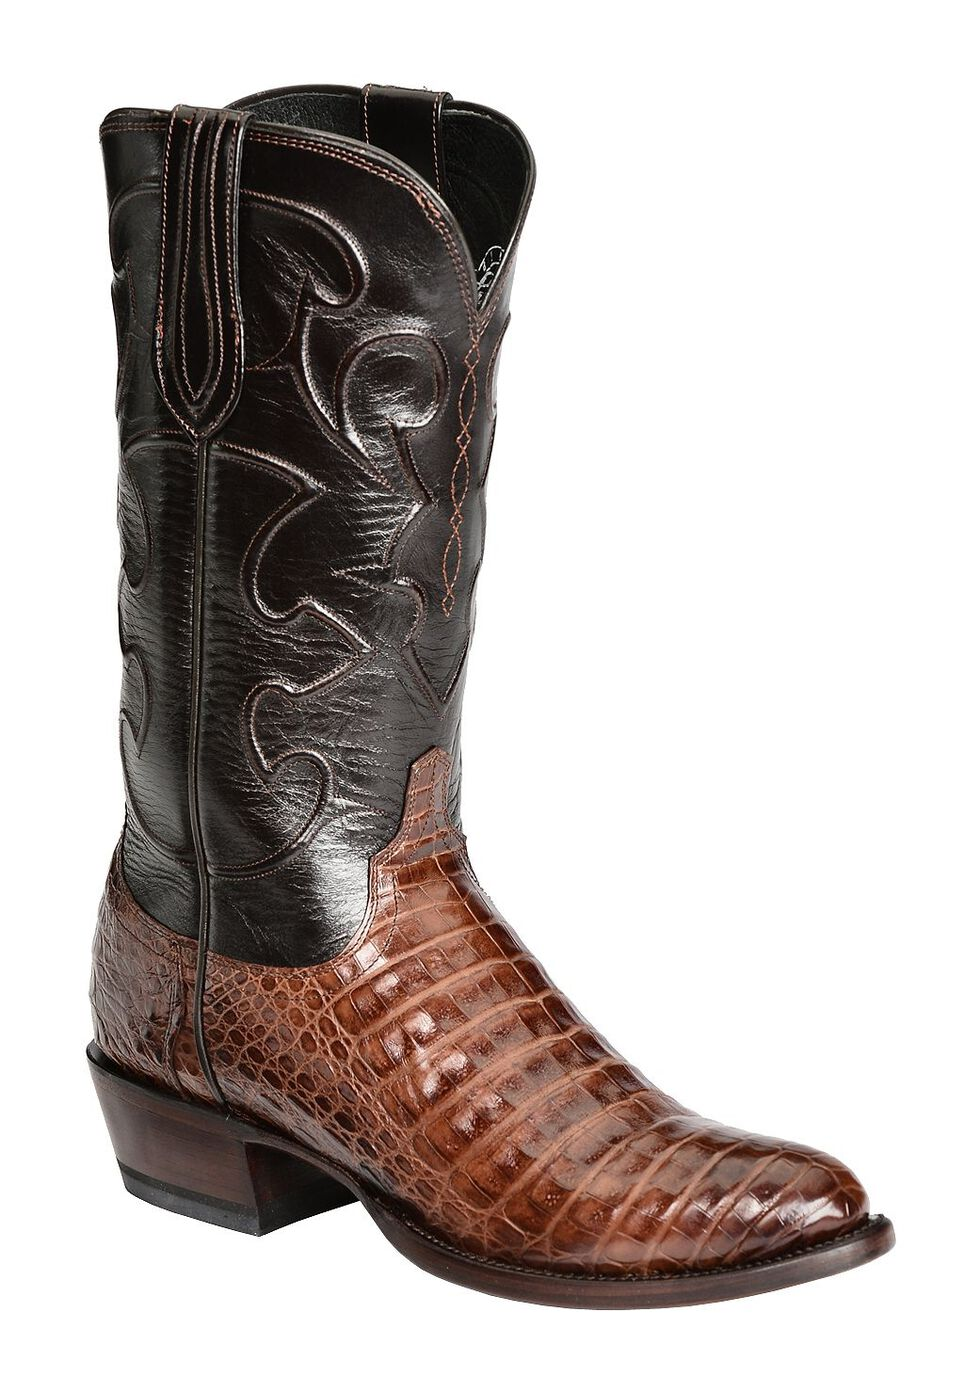 Lucchese Handmade 1883 Caiman Belly Cowboy Boots - Round Toe, Sienna, hi-res